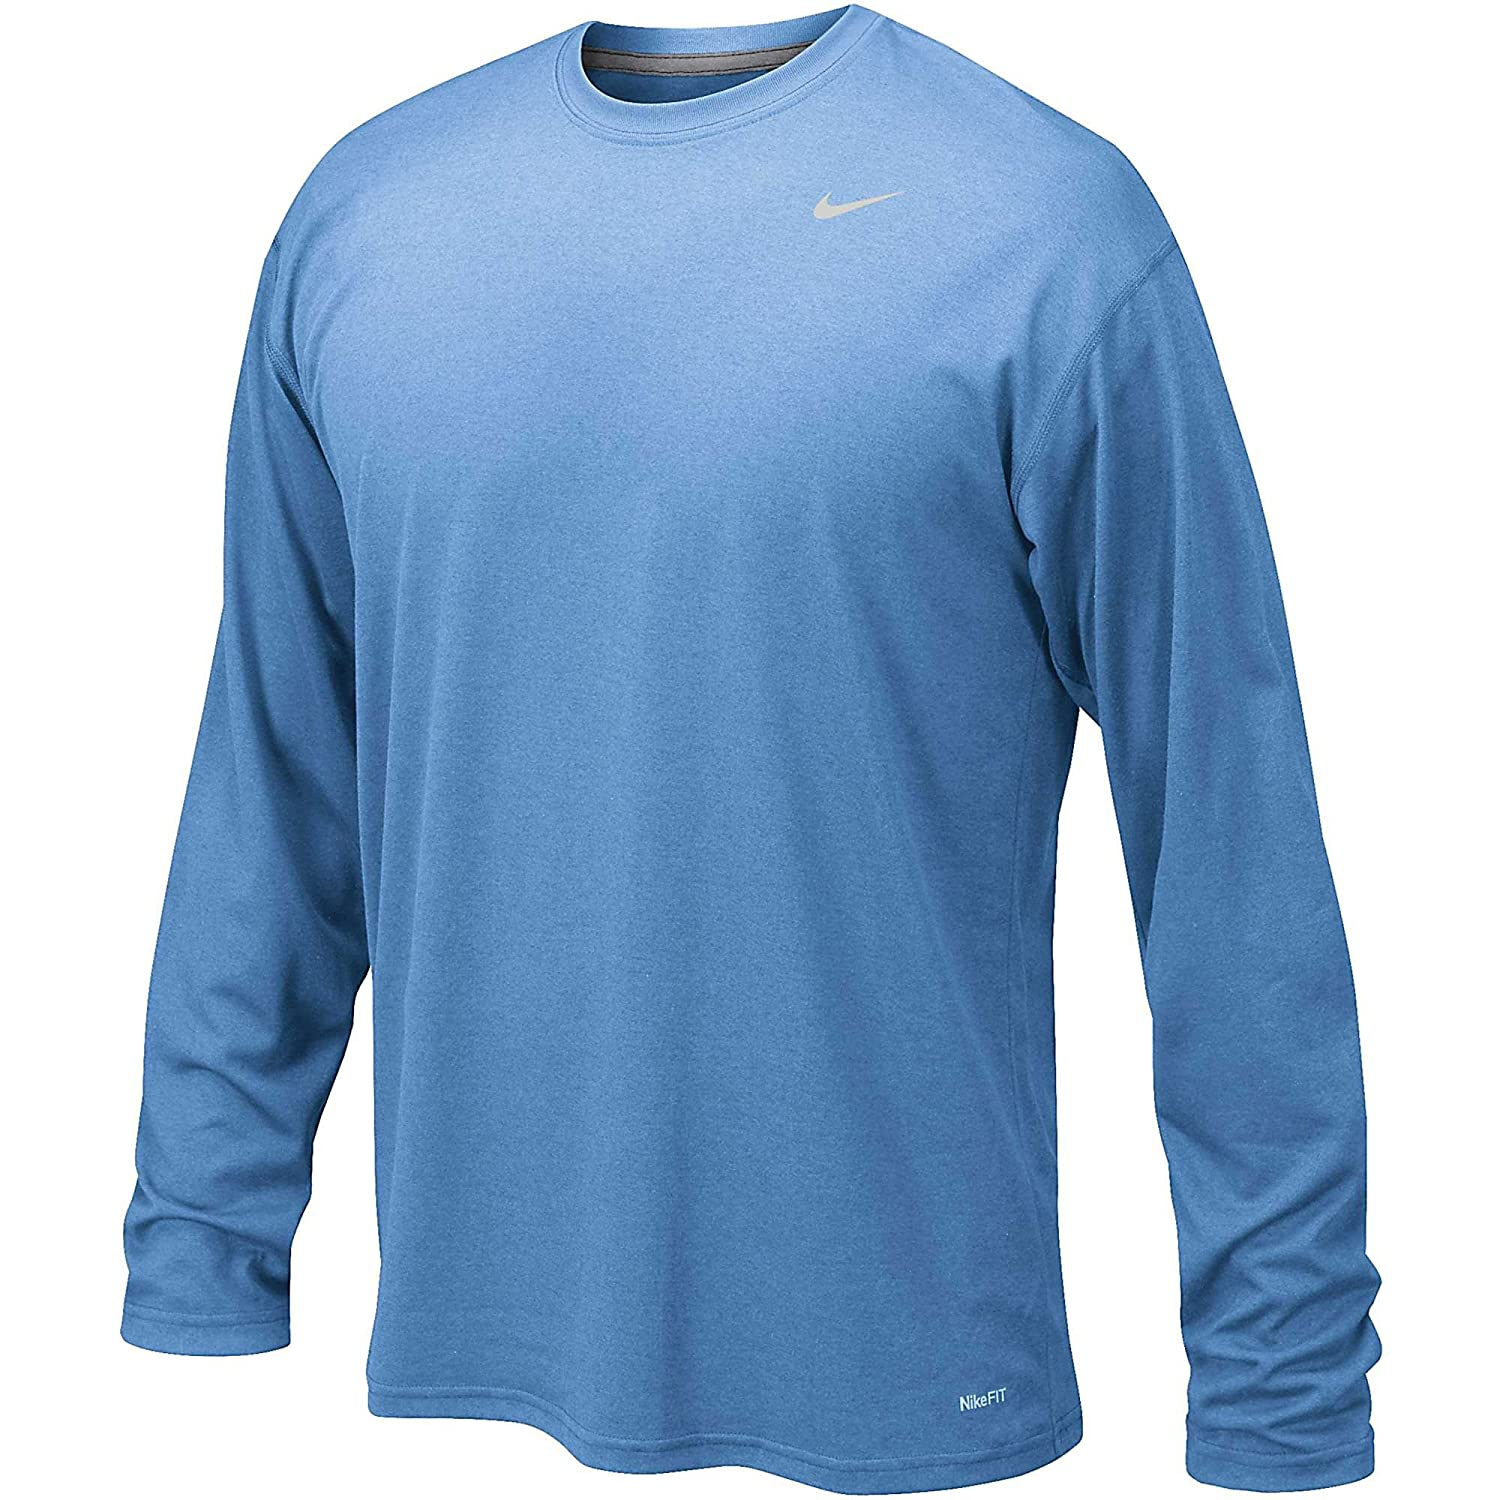 d1027693 Nike Men's Legend Long Sleeve Tee at Amazon Men's Clothing store: Athletic  Shirts